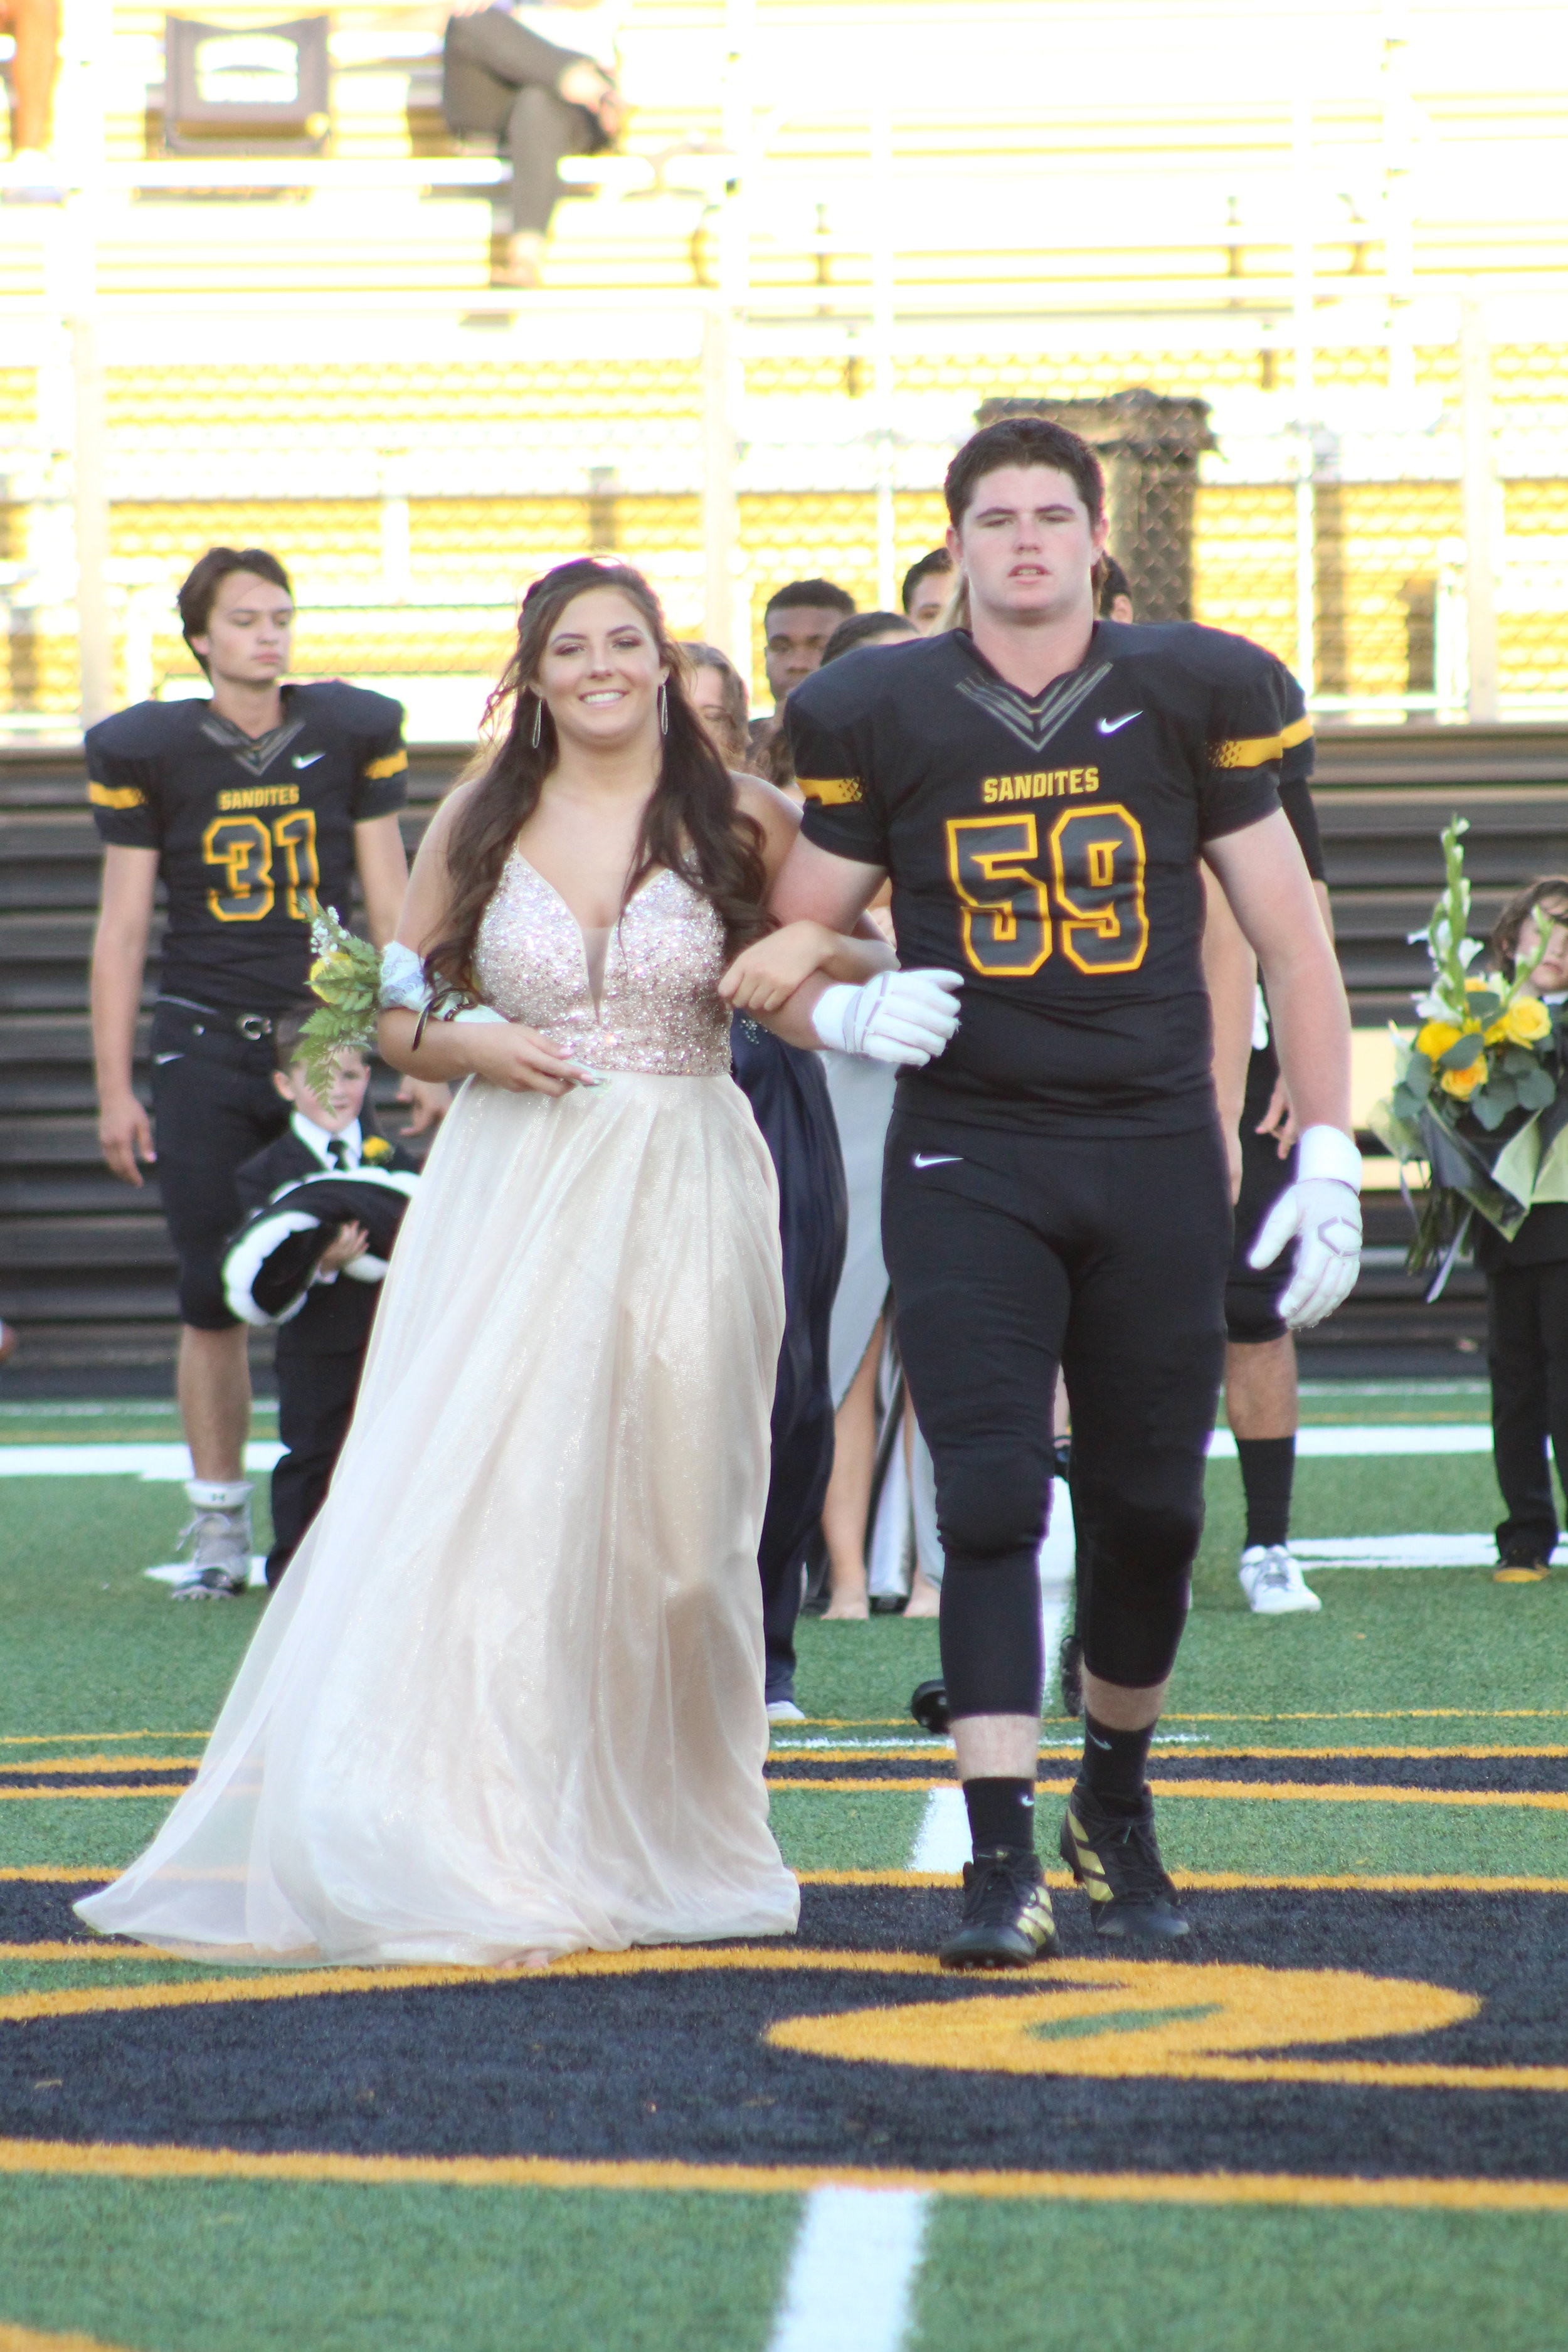 Taylor Spencer, escorted by Josh Fincannon. Spencer is the daughter of Brett Spencer and Terra Jordan Rhoads. She is a four-year varsity cheerleader. Fincannon is the son of Jason and Kristy Fincannon and is a three-year varsity offensive lineman.